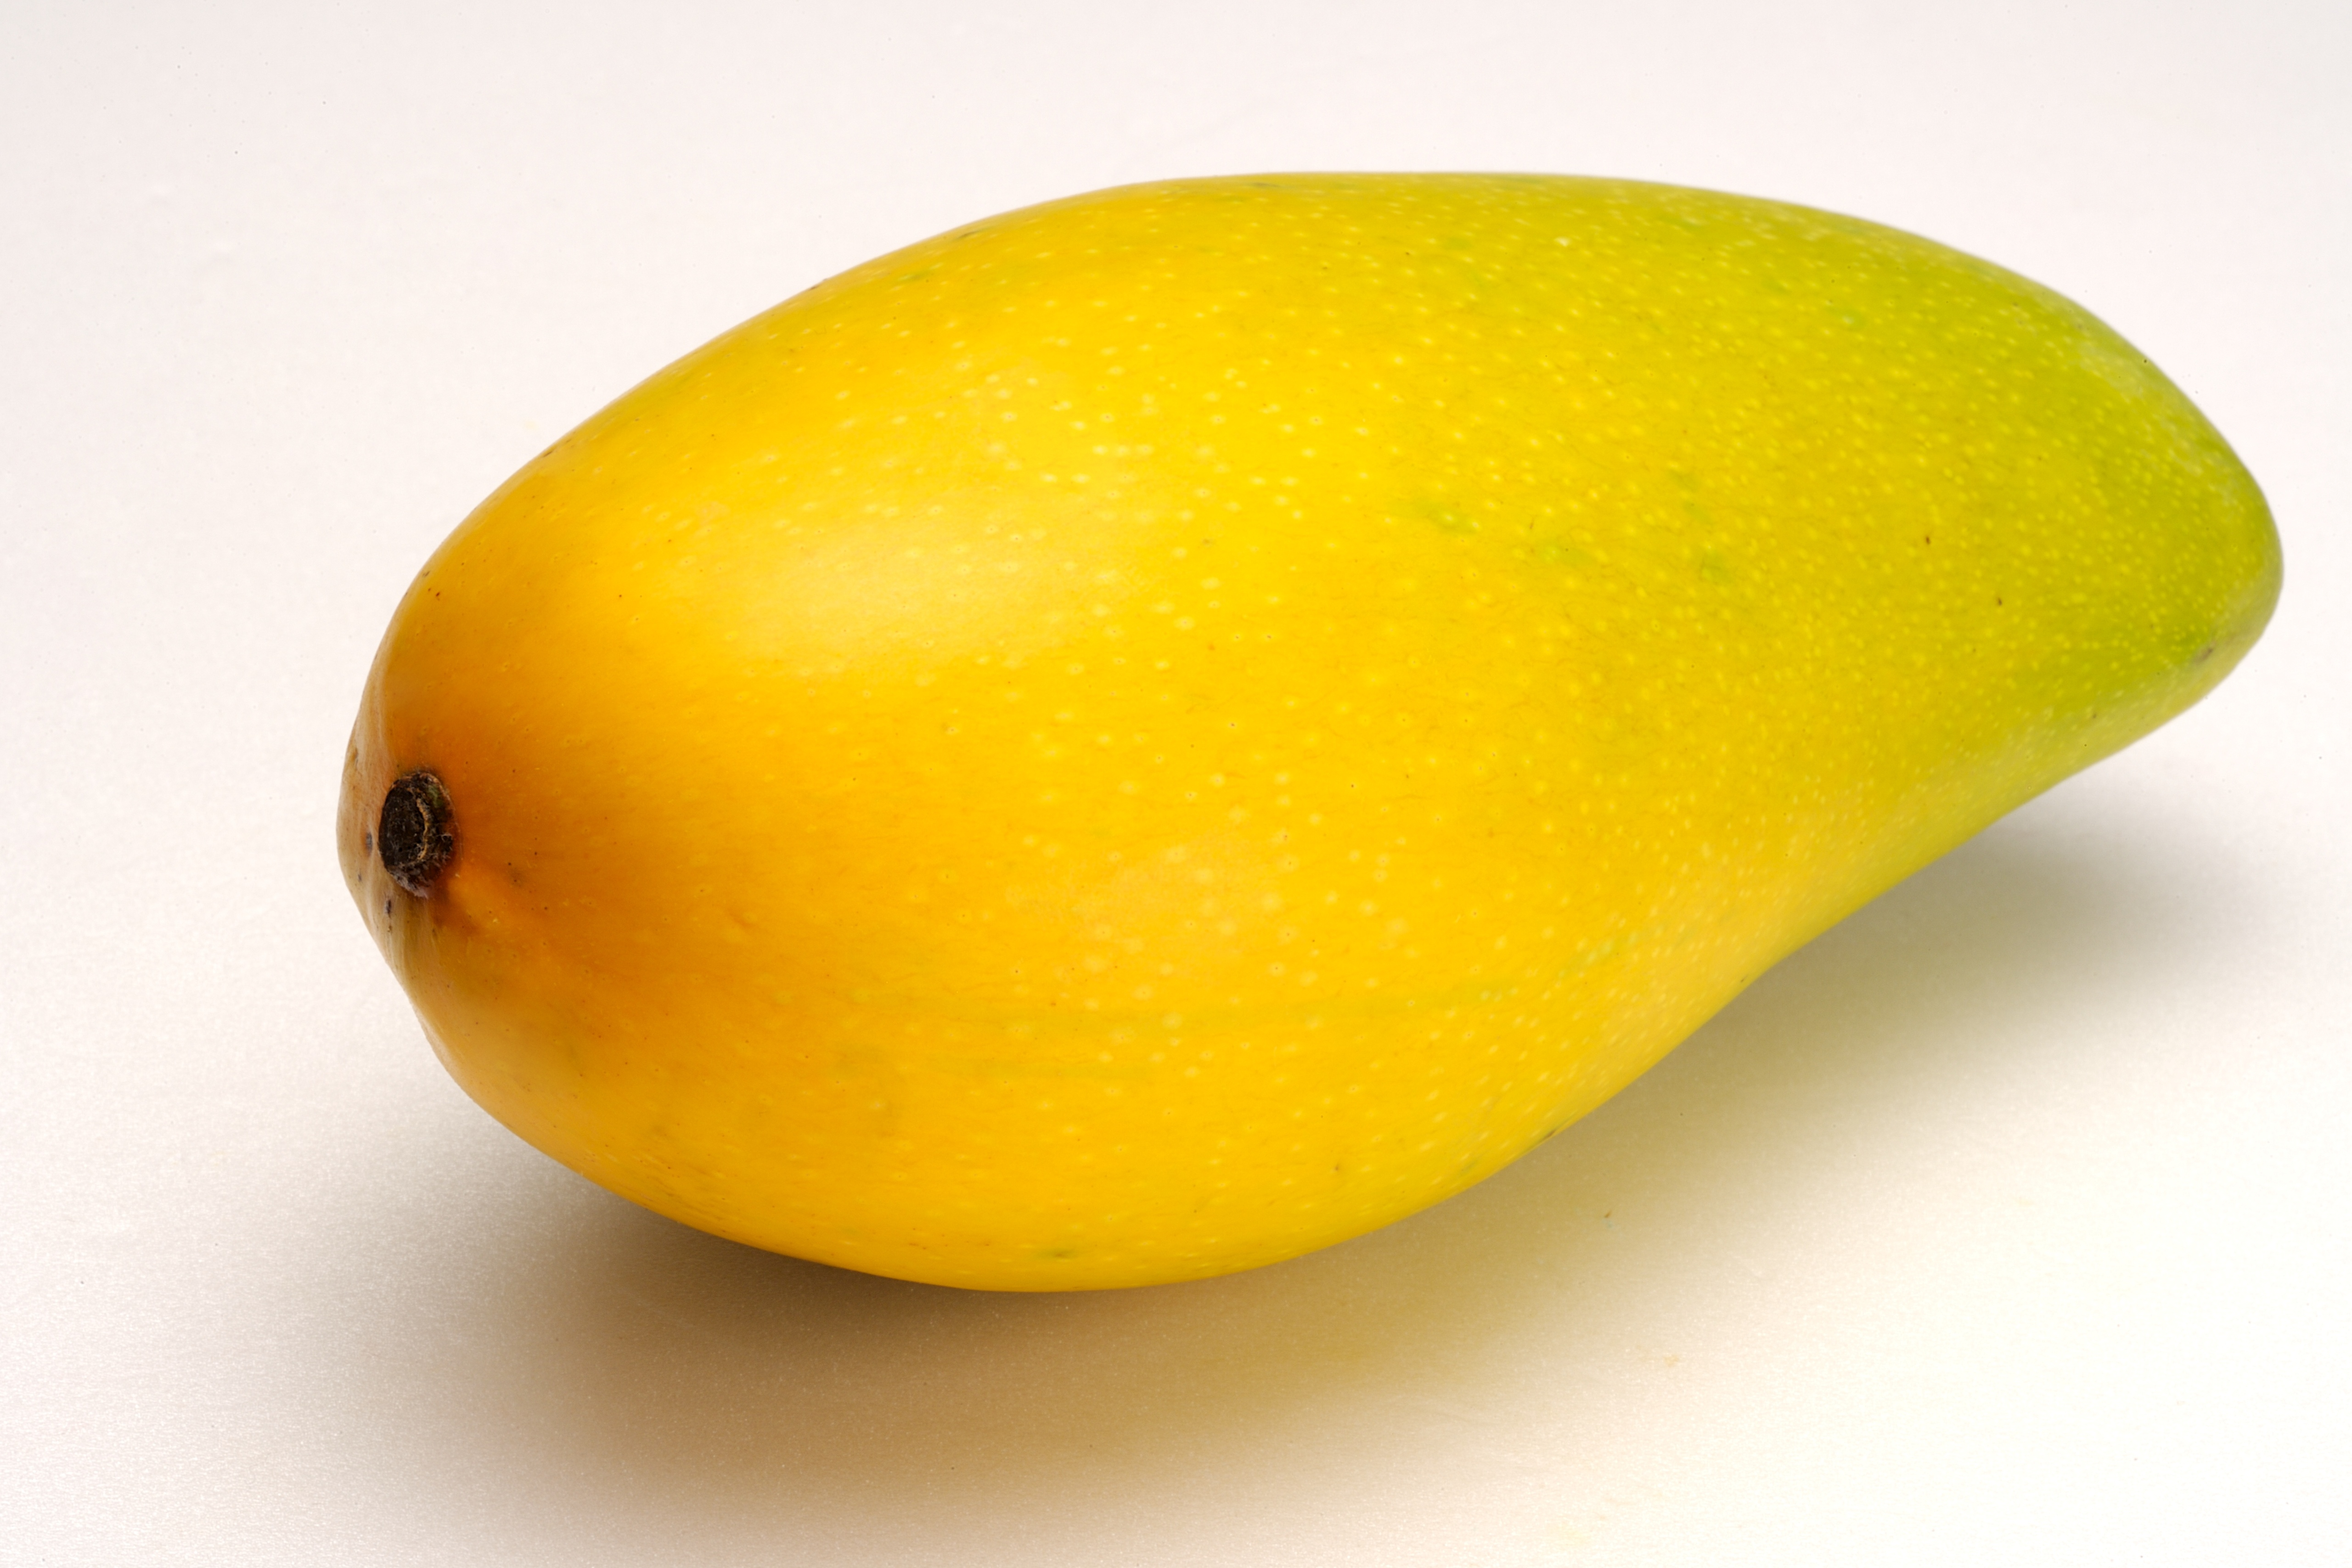 Ataulfo mangos: These bright yellow mangos are grown all over the world, but in April, some of the tastiest varieties come out of Mexico.